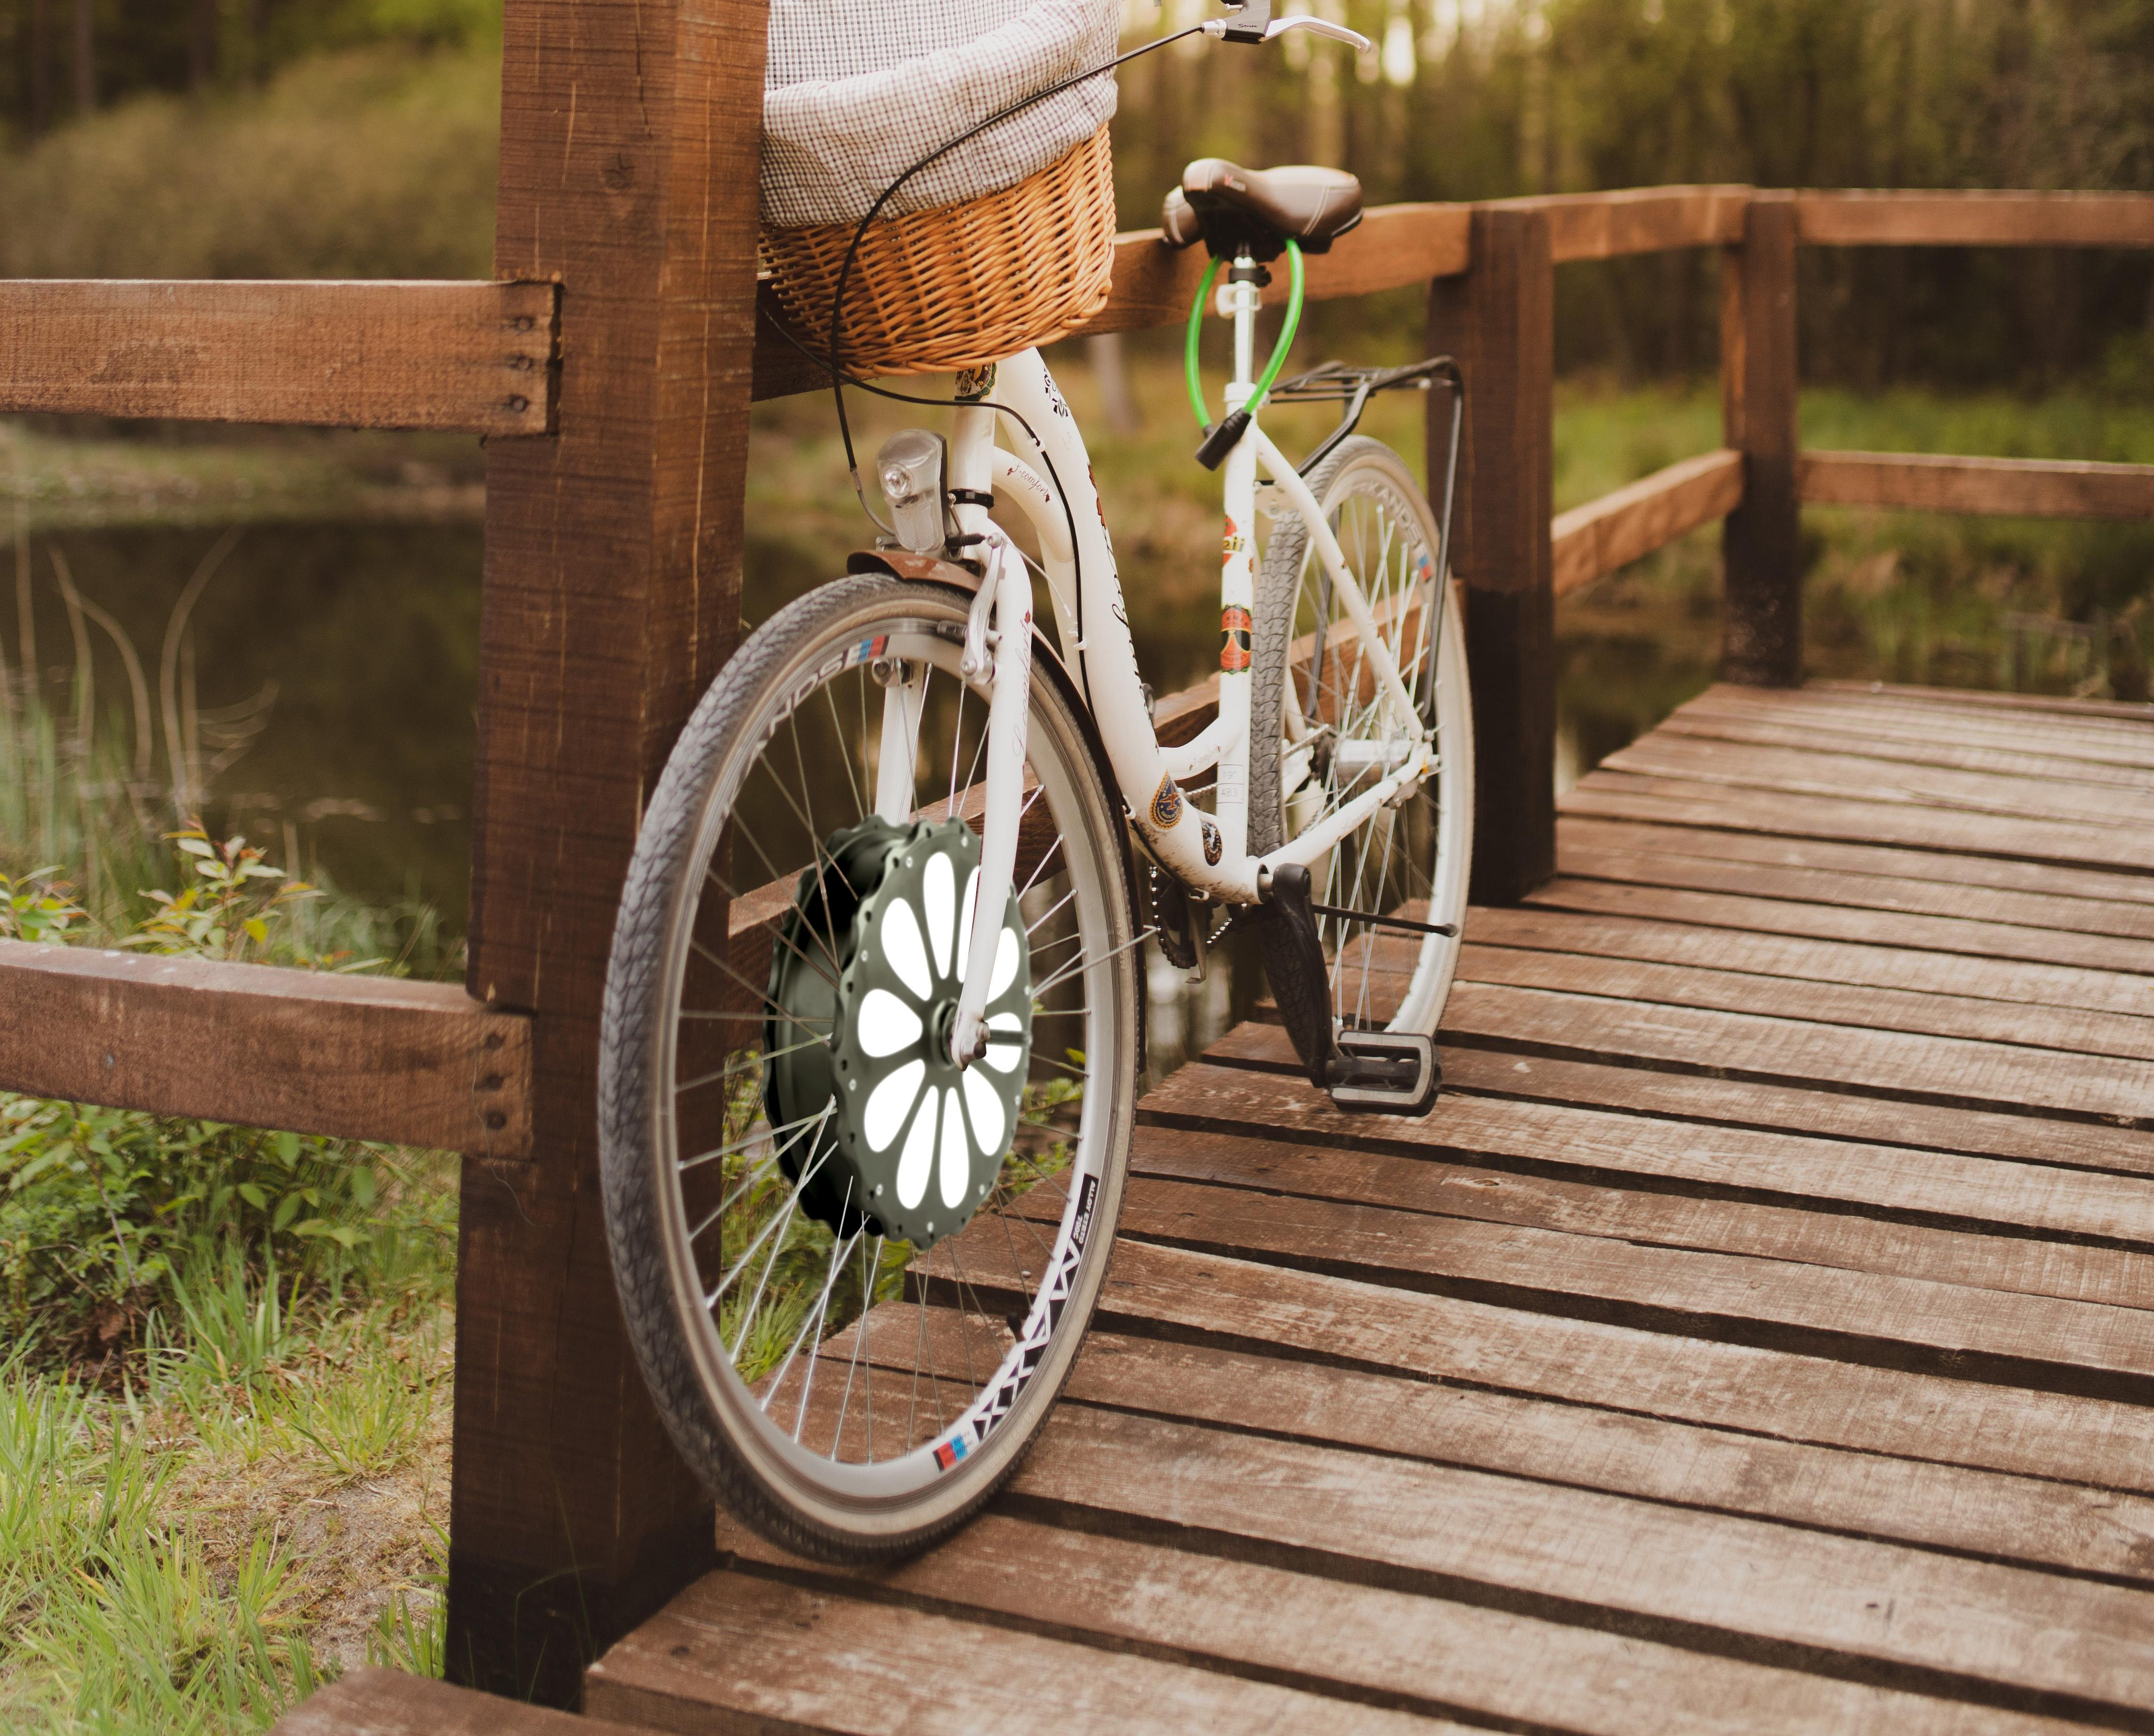 Lvbu wheel-the first choice for commuting